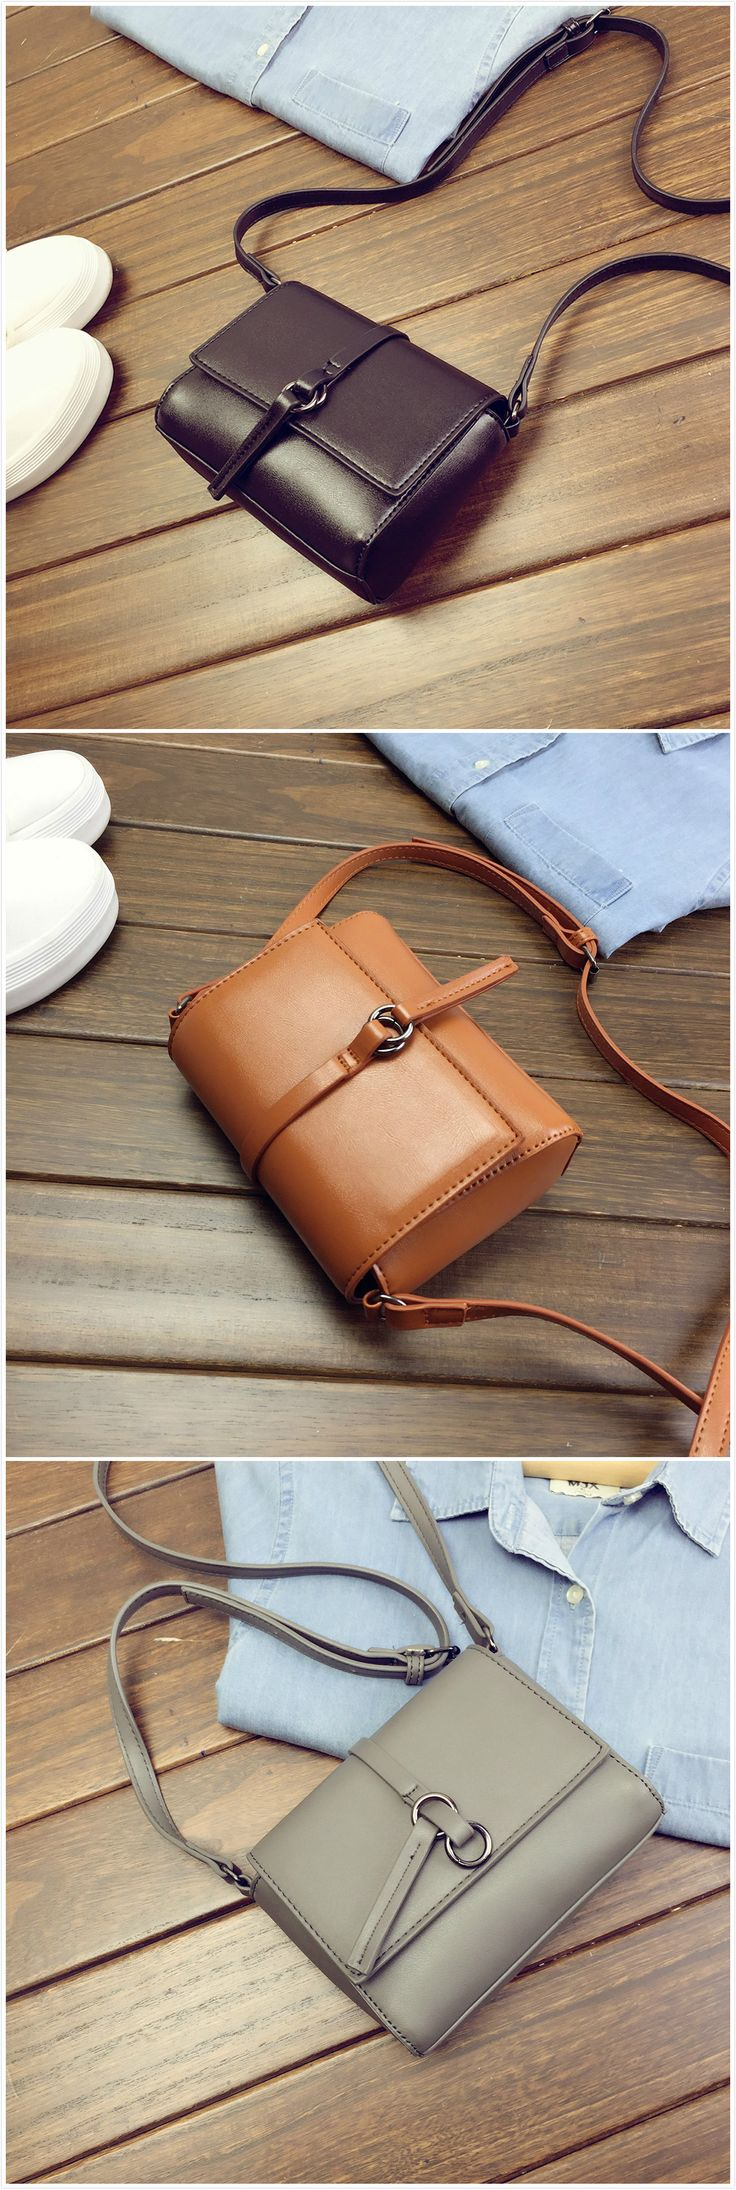 Women's PU Leather Square Cross Shoulder Bag